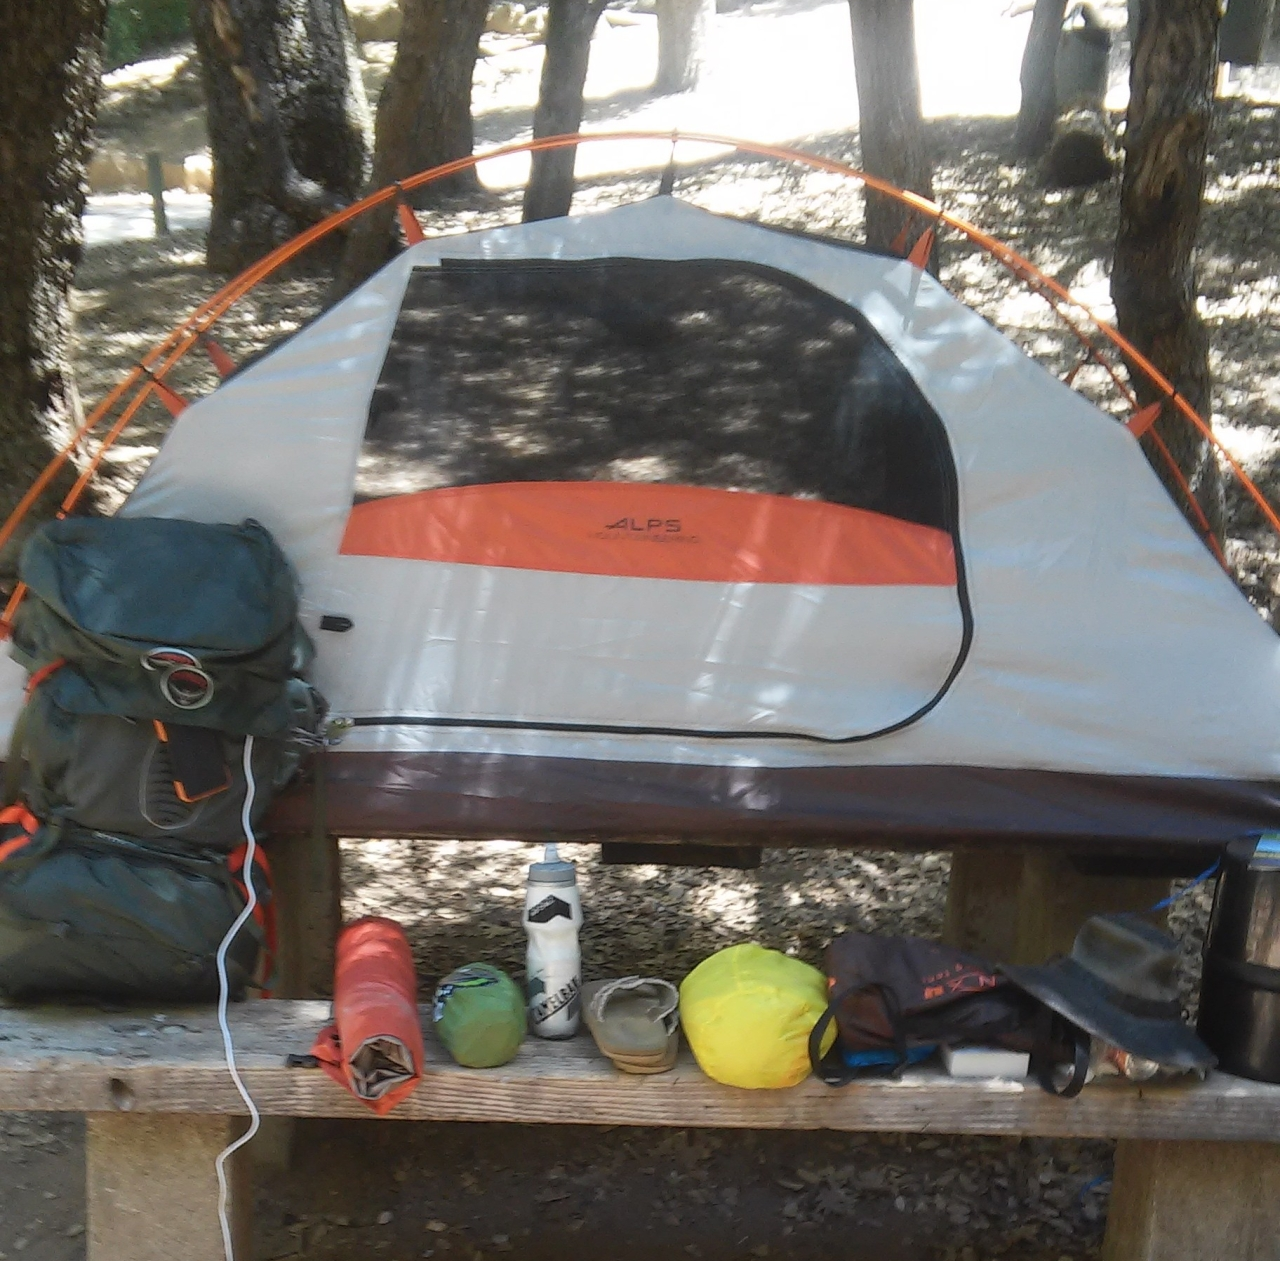 My First Solo Backpacking Trip: Palomar Mountain